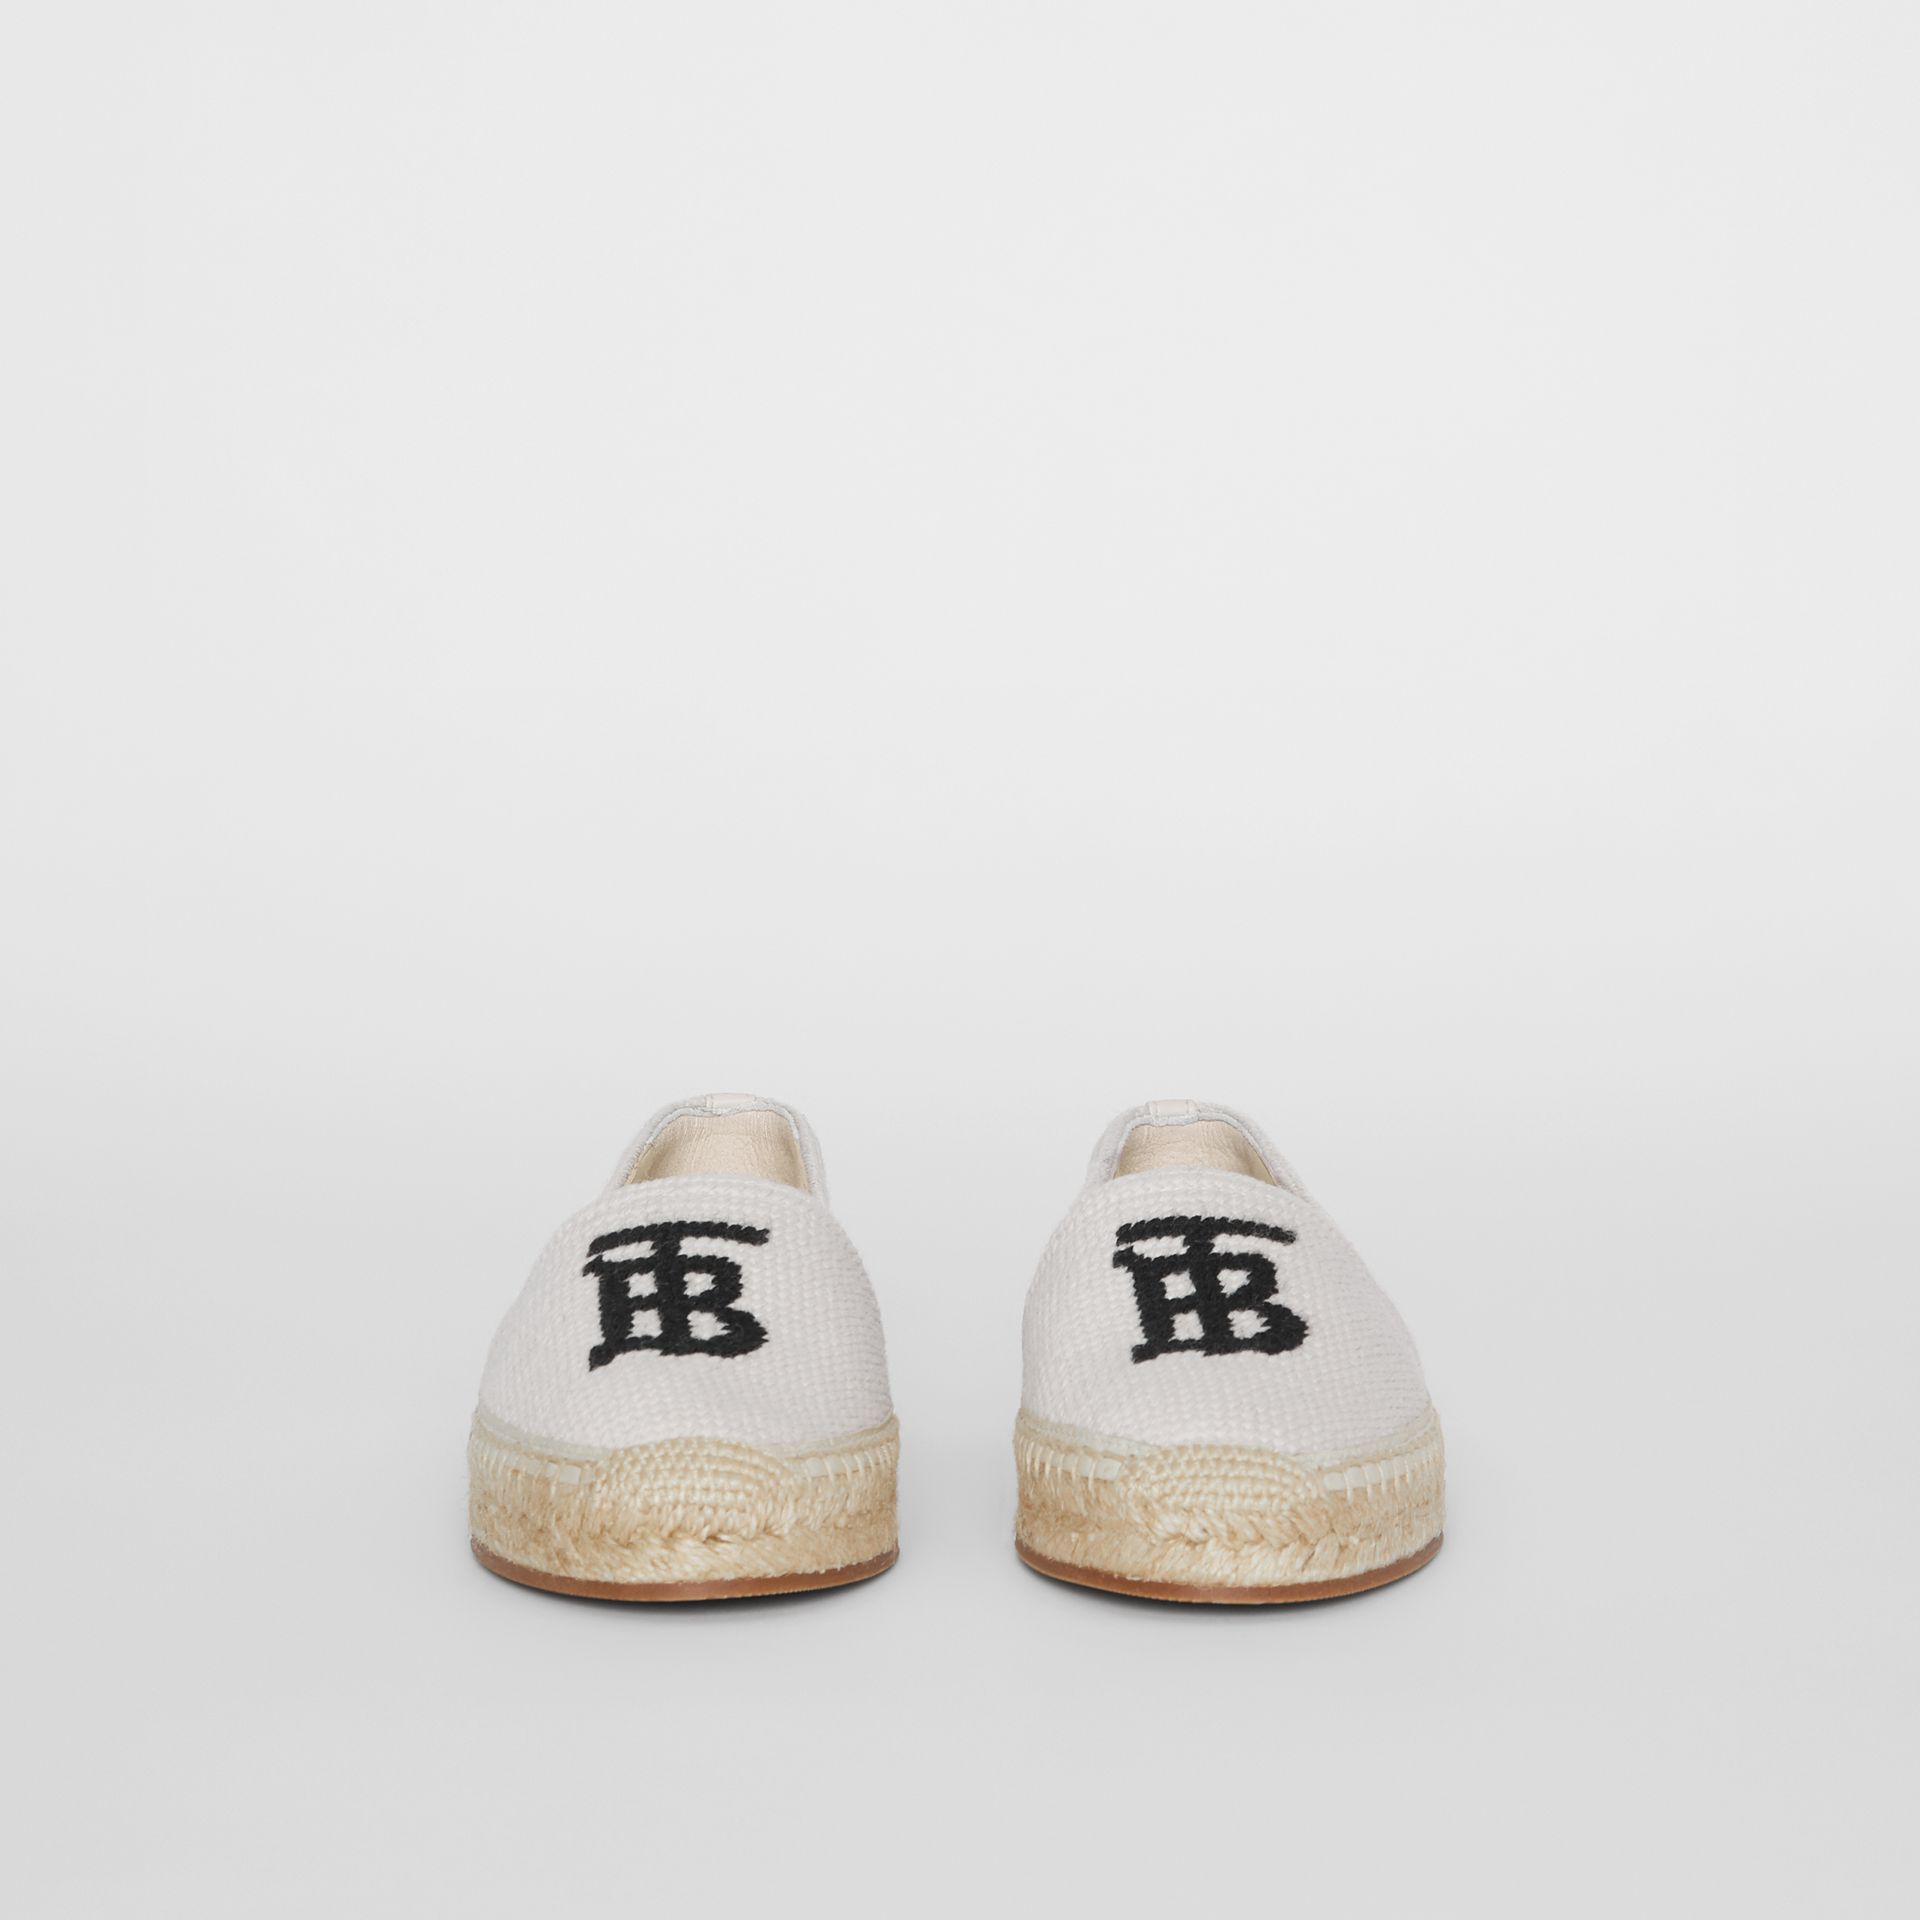 Monogram Motif Cotton and Leather Espadrilles in Ecru/black - Women | Burberry - gallery image 2